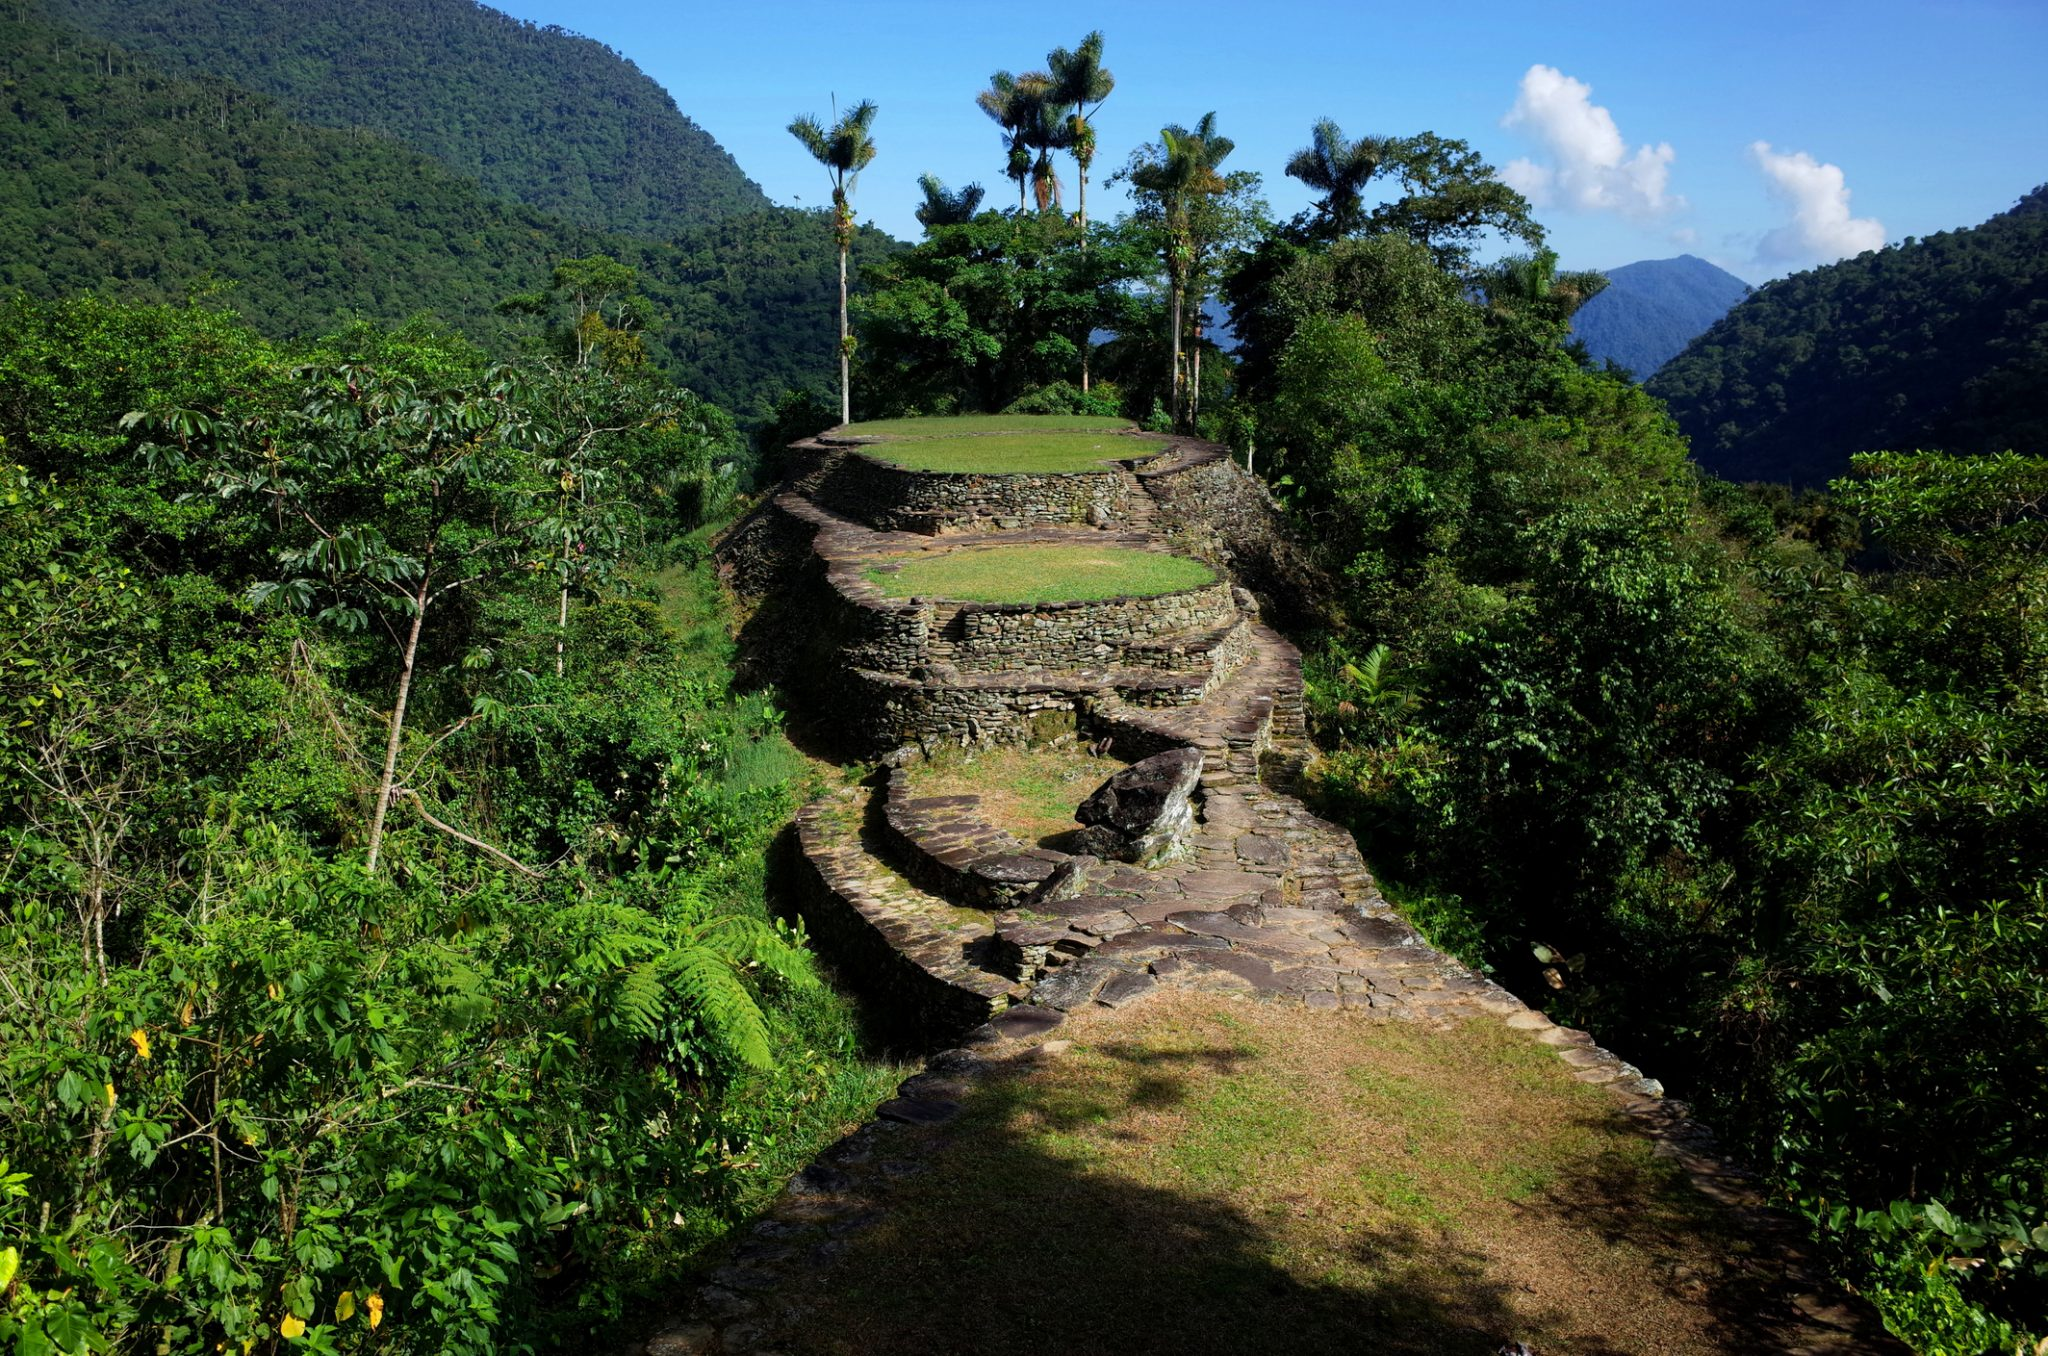 How hard is it to hike to Colombia's lost city of Ciudad Perdida?